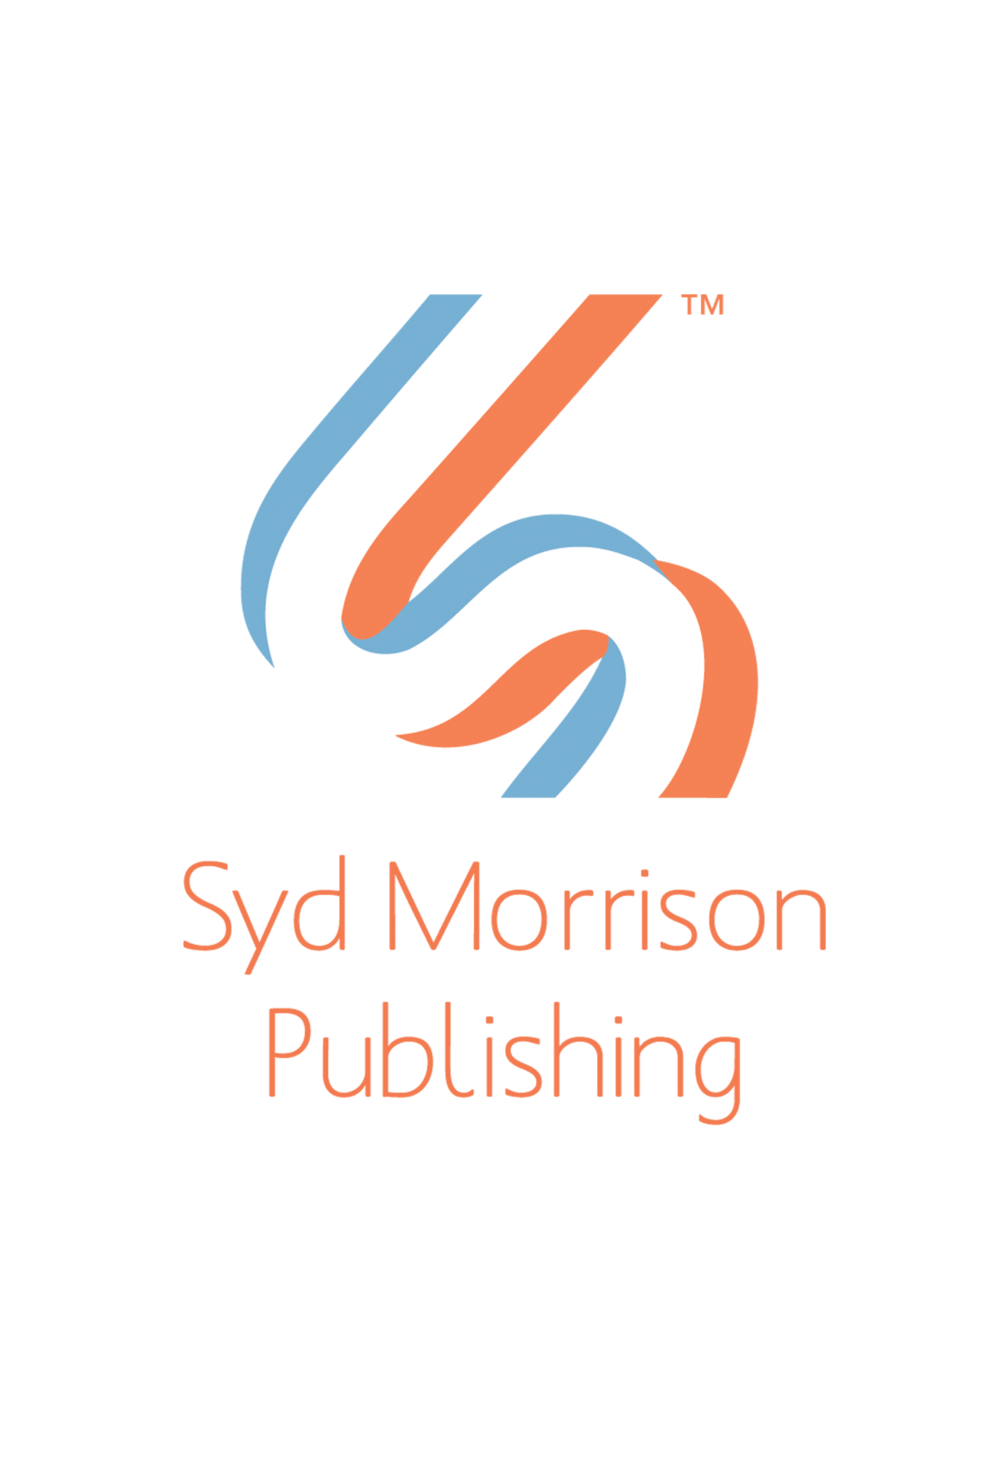 Syd Morrison Publishing   is a leading Los Angeles-based children's publishing company. Their primary mission is to support aspiring new children's authors.